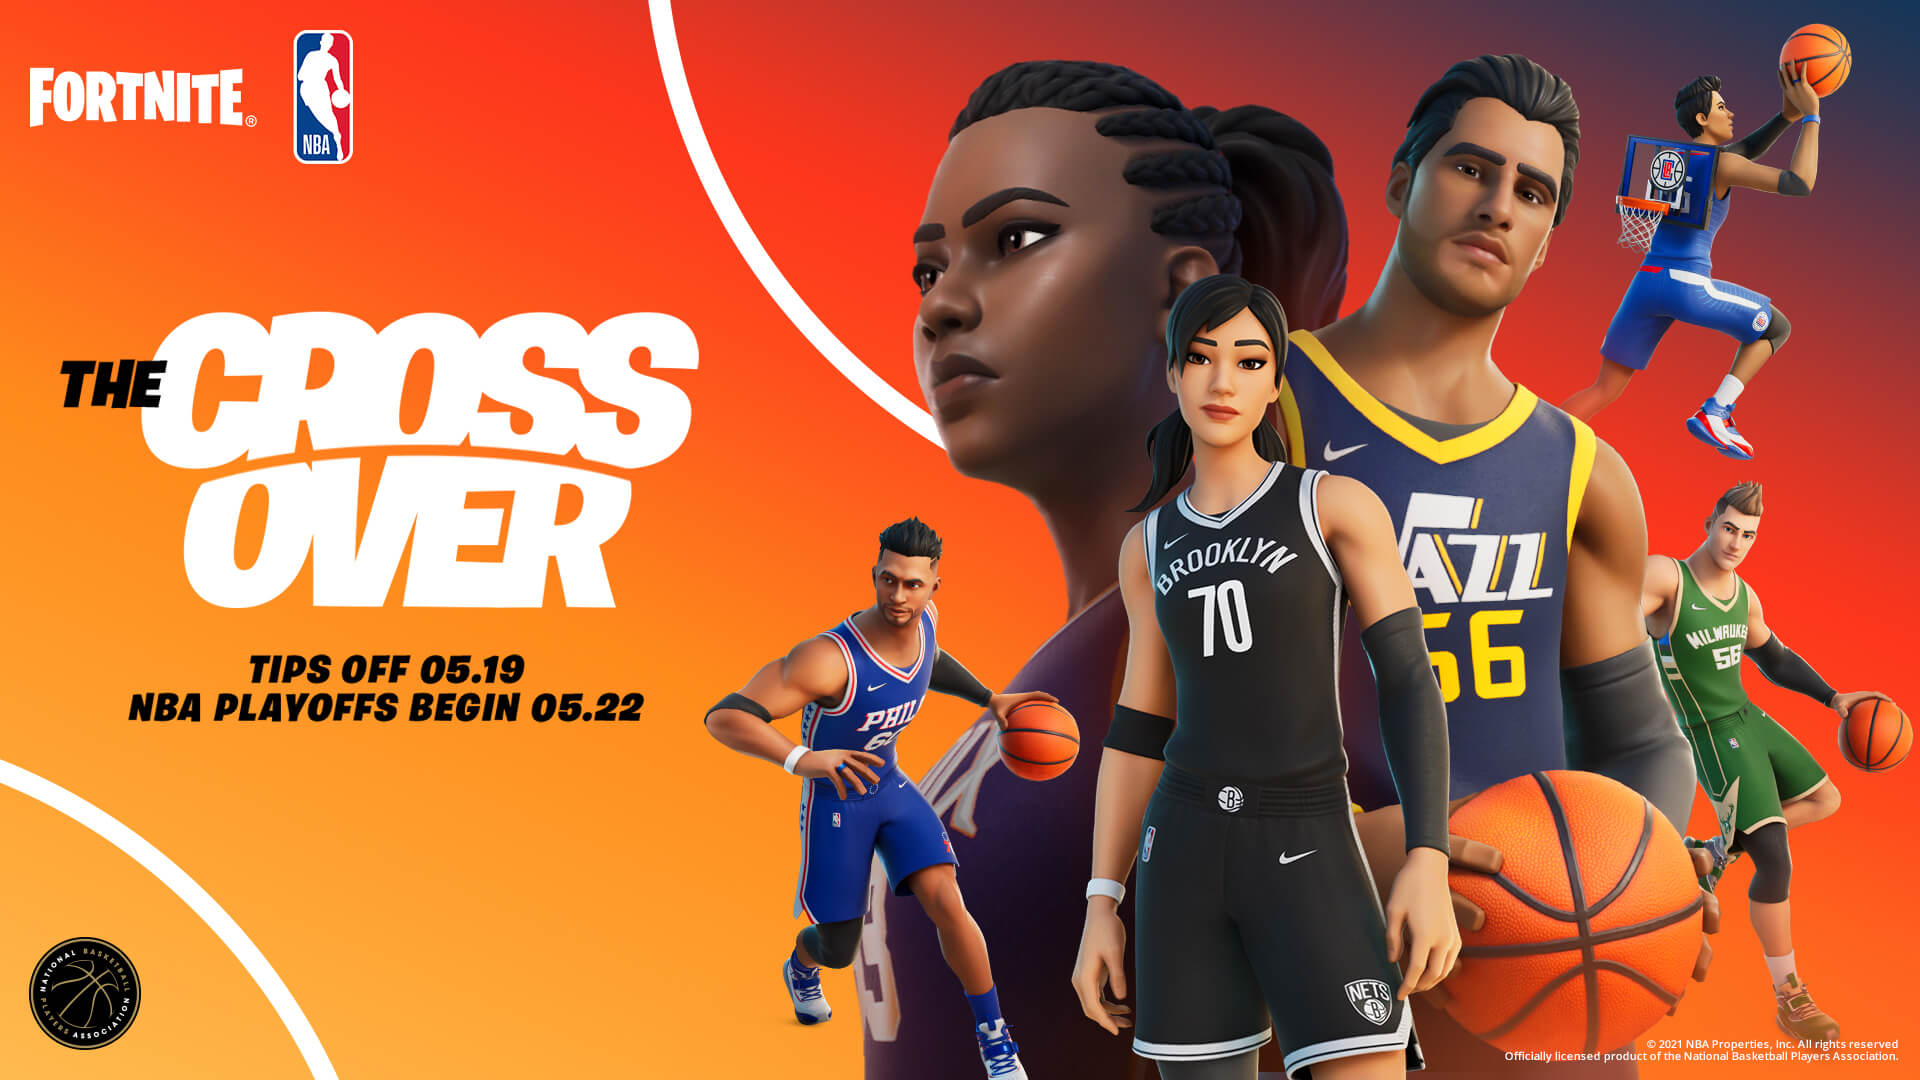 NBA announces partnership with Fortnite, unveils outfits for all 30 teams